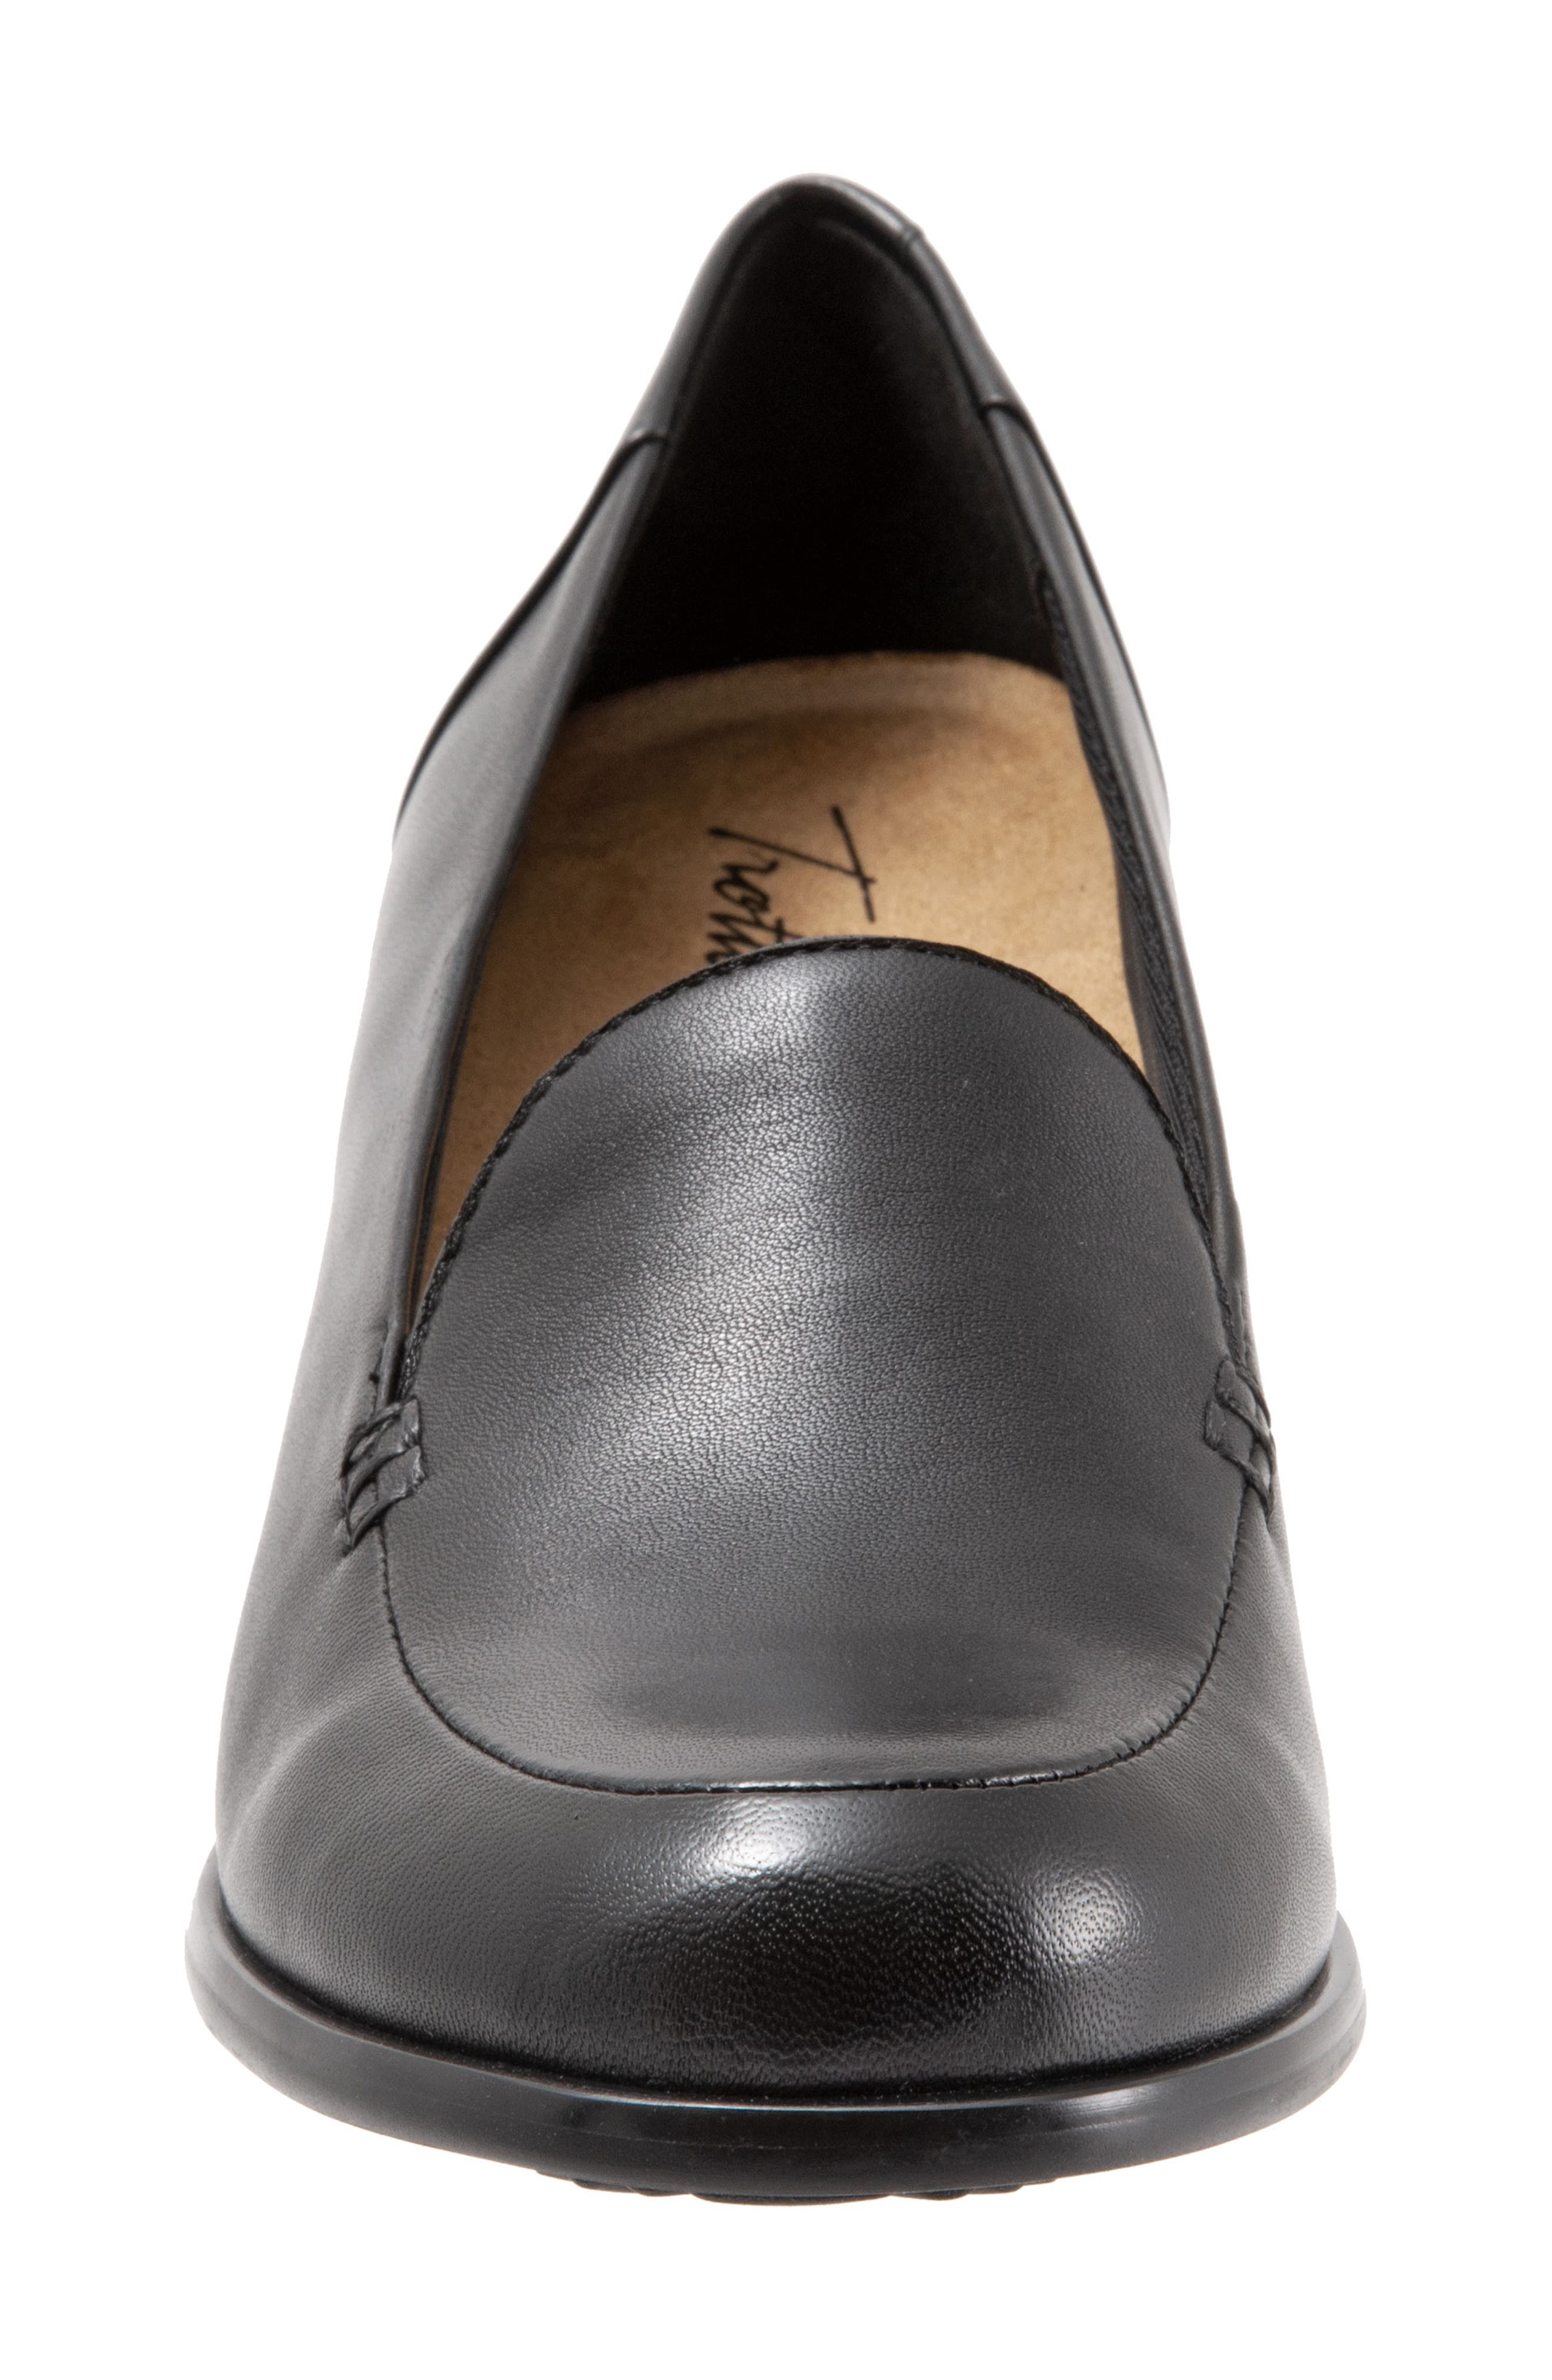 TROTTERS, Quincy Loafer Pump, Alternate thumbnail 4, color, BLACK LEATHER